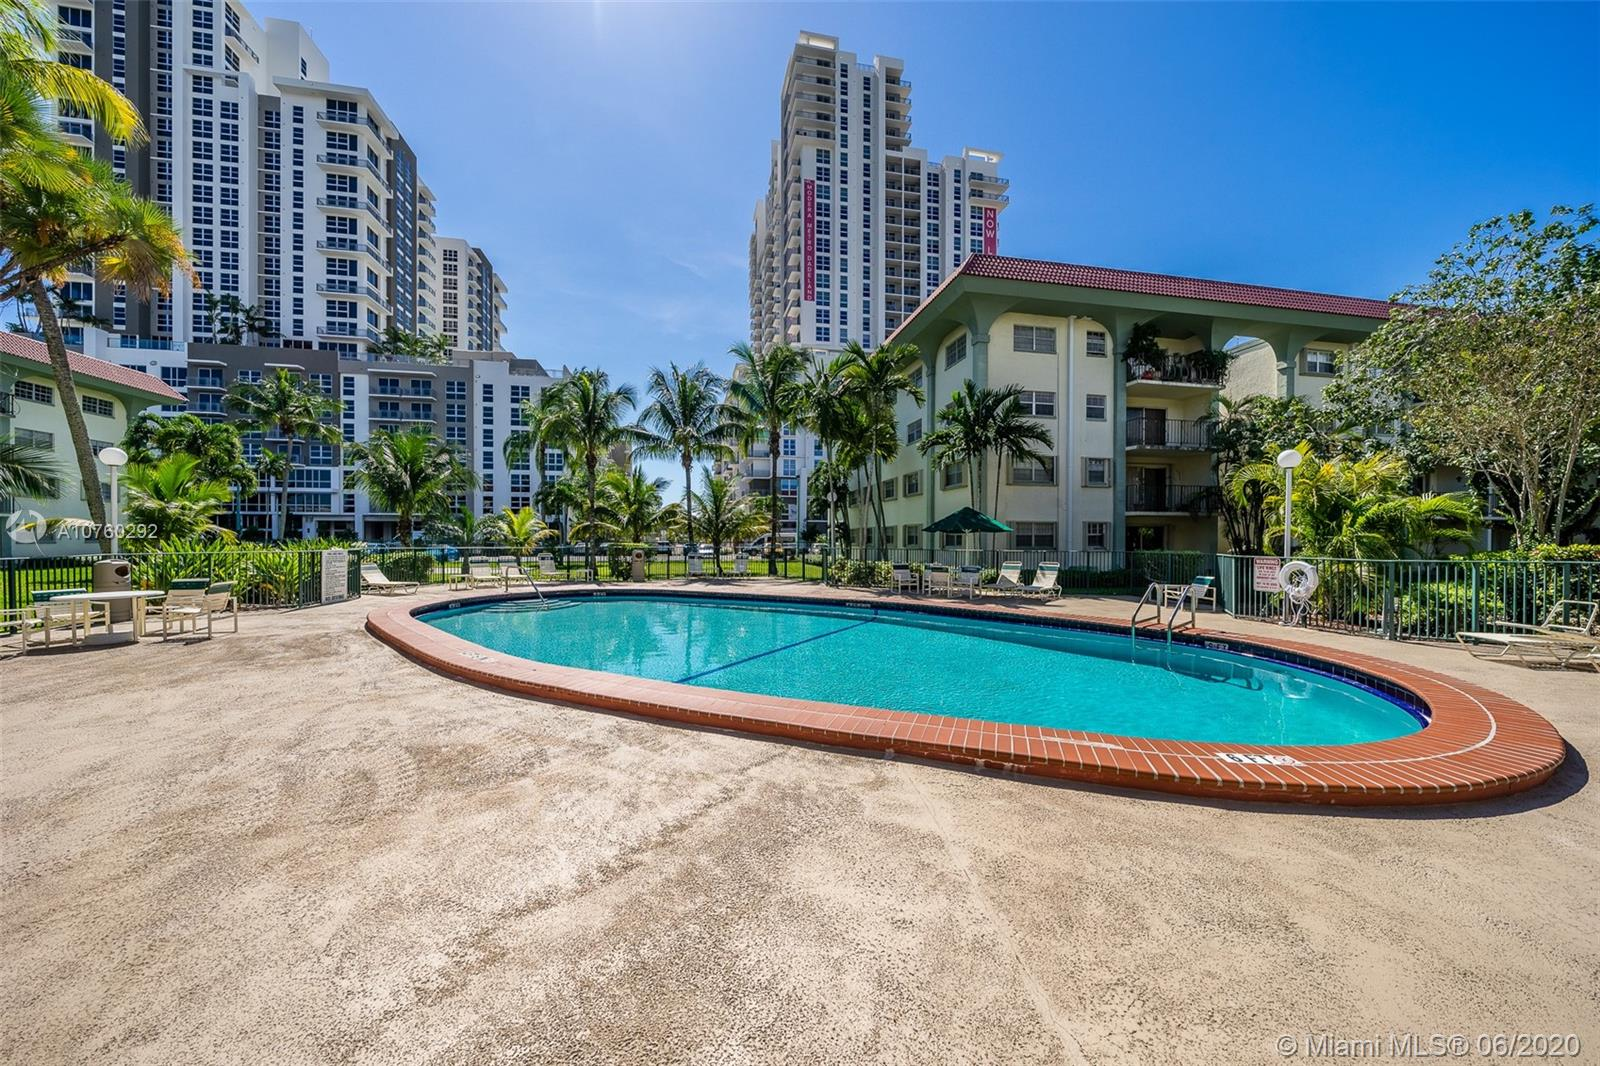 .PRICE JUST REDUCED Well maintained and ample spaced corner unit, 2 bedroom, 2 bathroom Condo. Exterior view from the balcony, within a four floor building; unit tiled throughout, located on the second floor. Ample closet space. Two elevators provide access to unit. Accordion shutter on balcony sliding door.  Amenities include : security gate, Club house with gated community pool.  Maintenance fee includes basic cable and water. Near the University of Miami, Dadeland Mall with easy access to restaurants and metro rail nearby. Many public transportation options as well. No special assessment. Has the 40 year certificate.